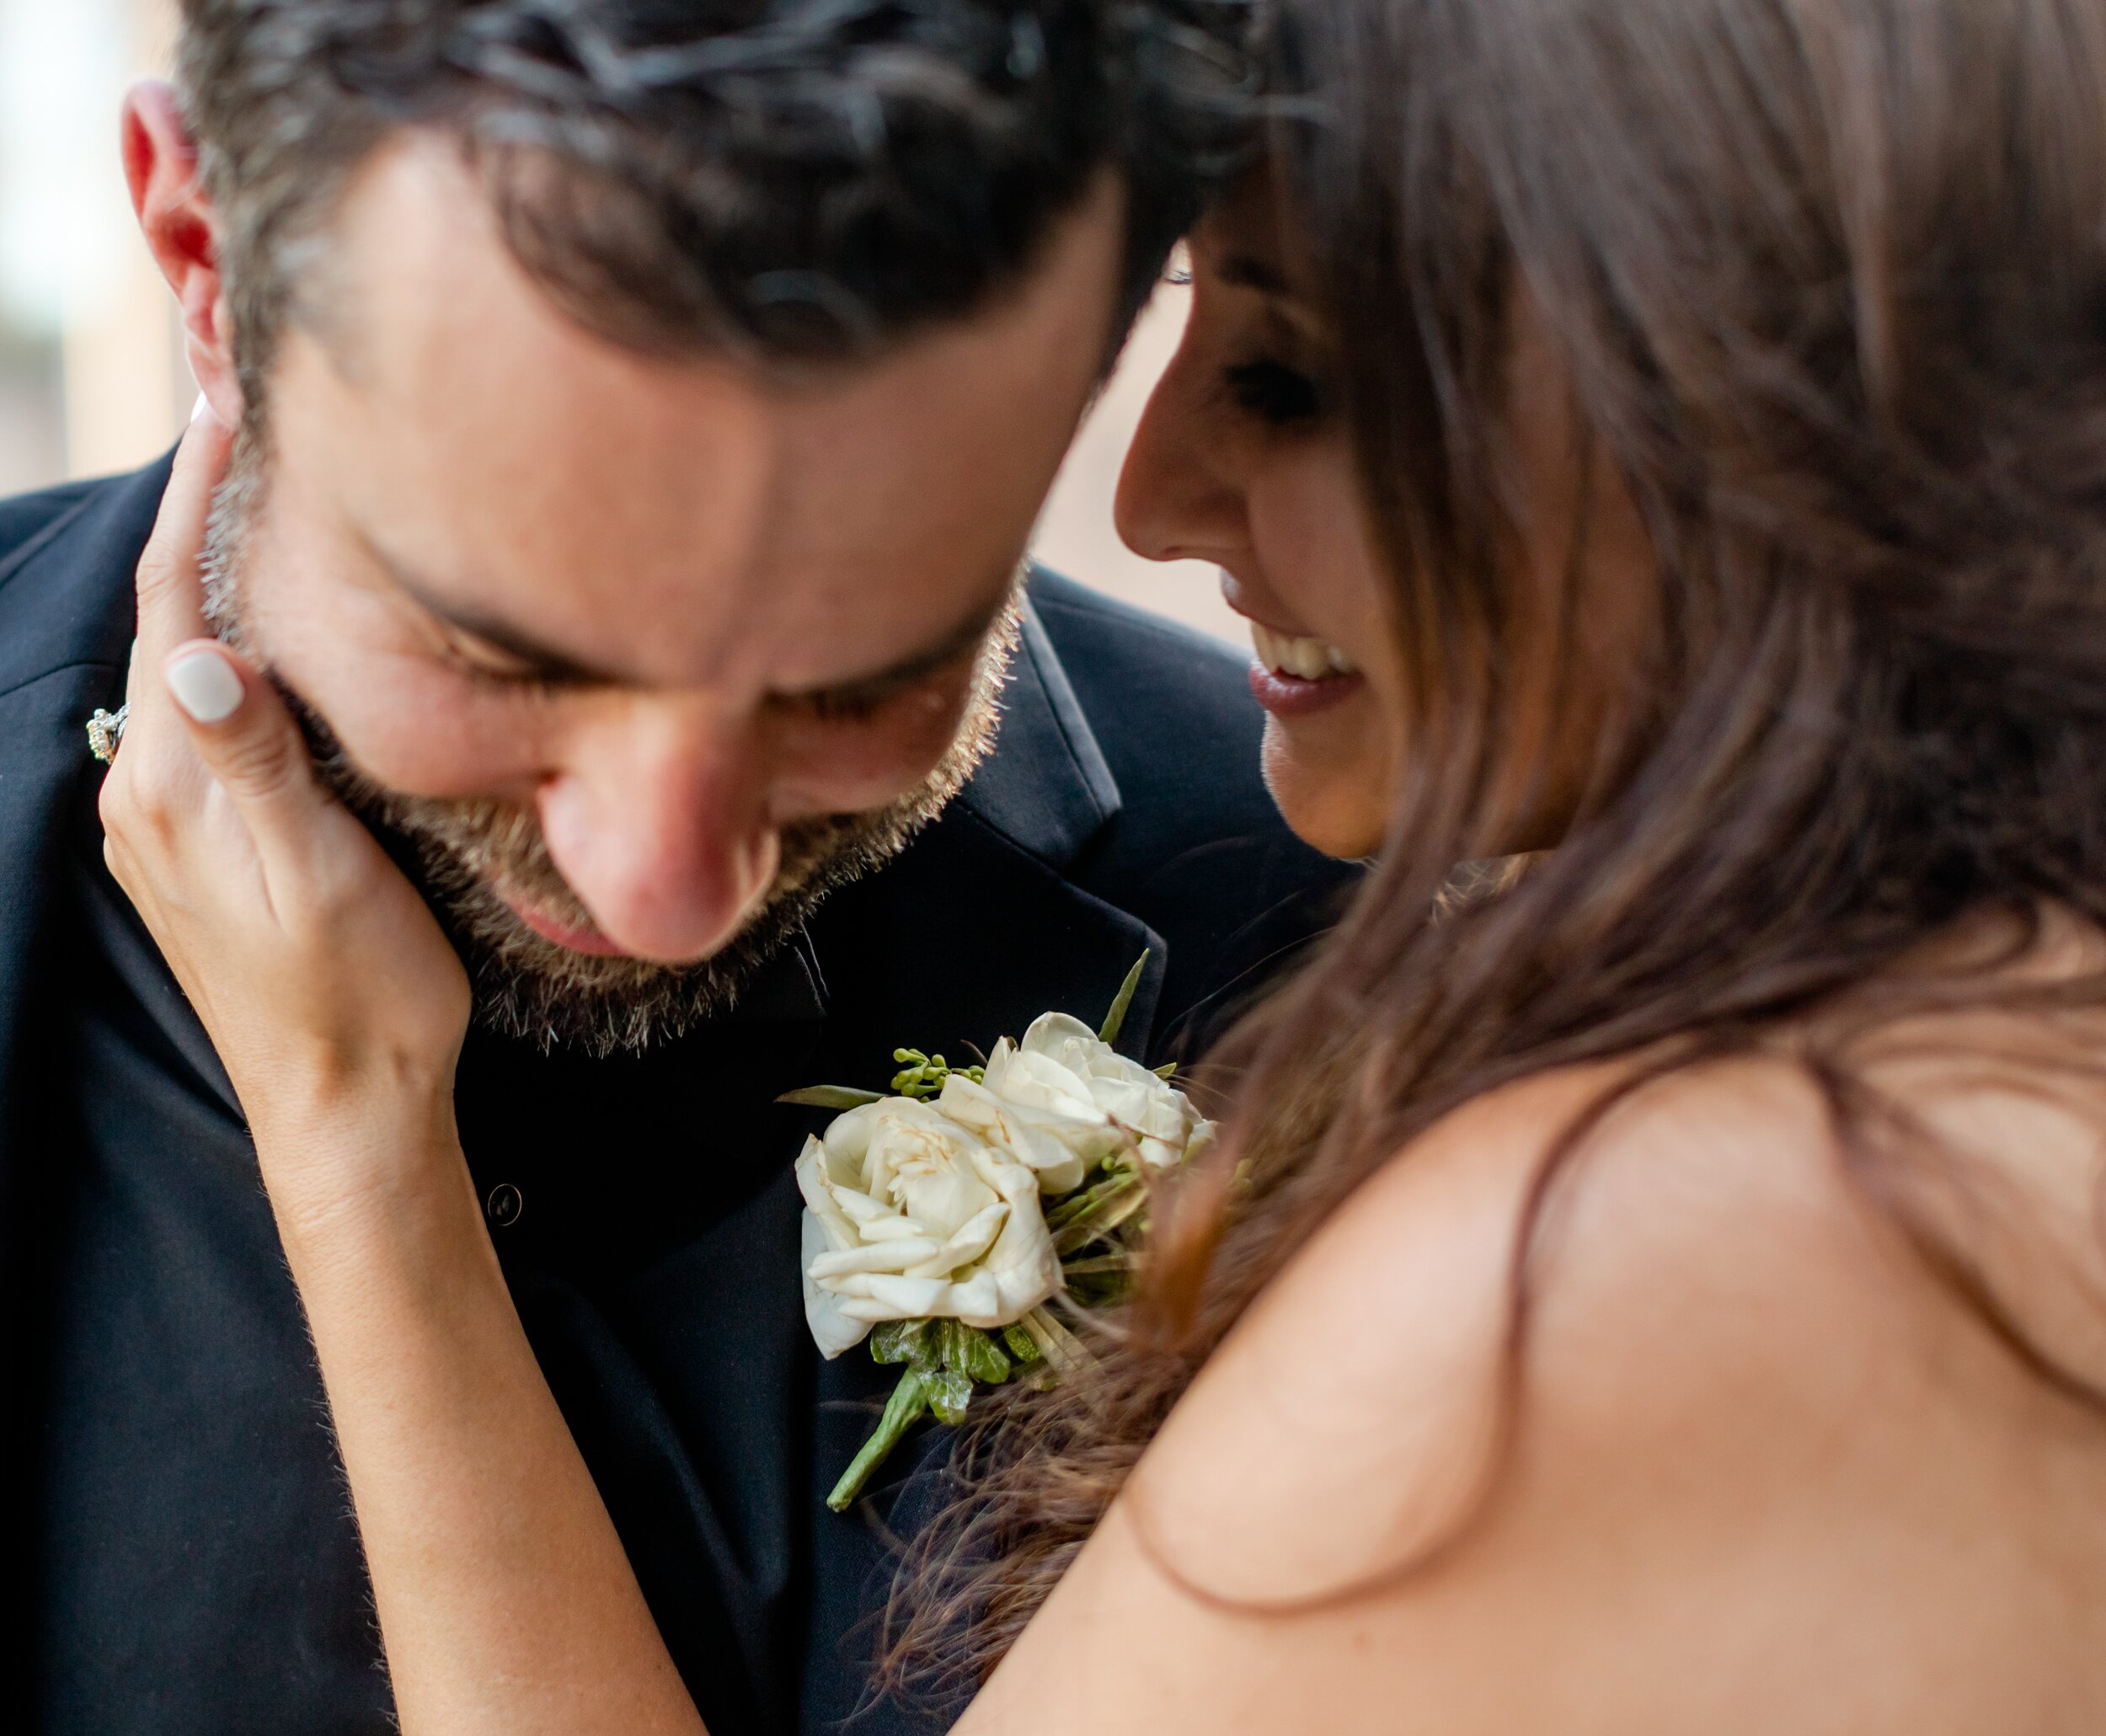 wedding - The big day is a combination of pure candid joy blended with stylish images